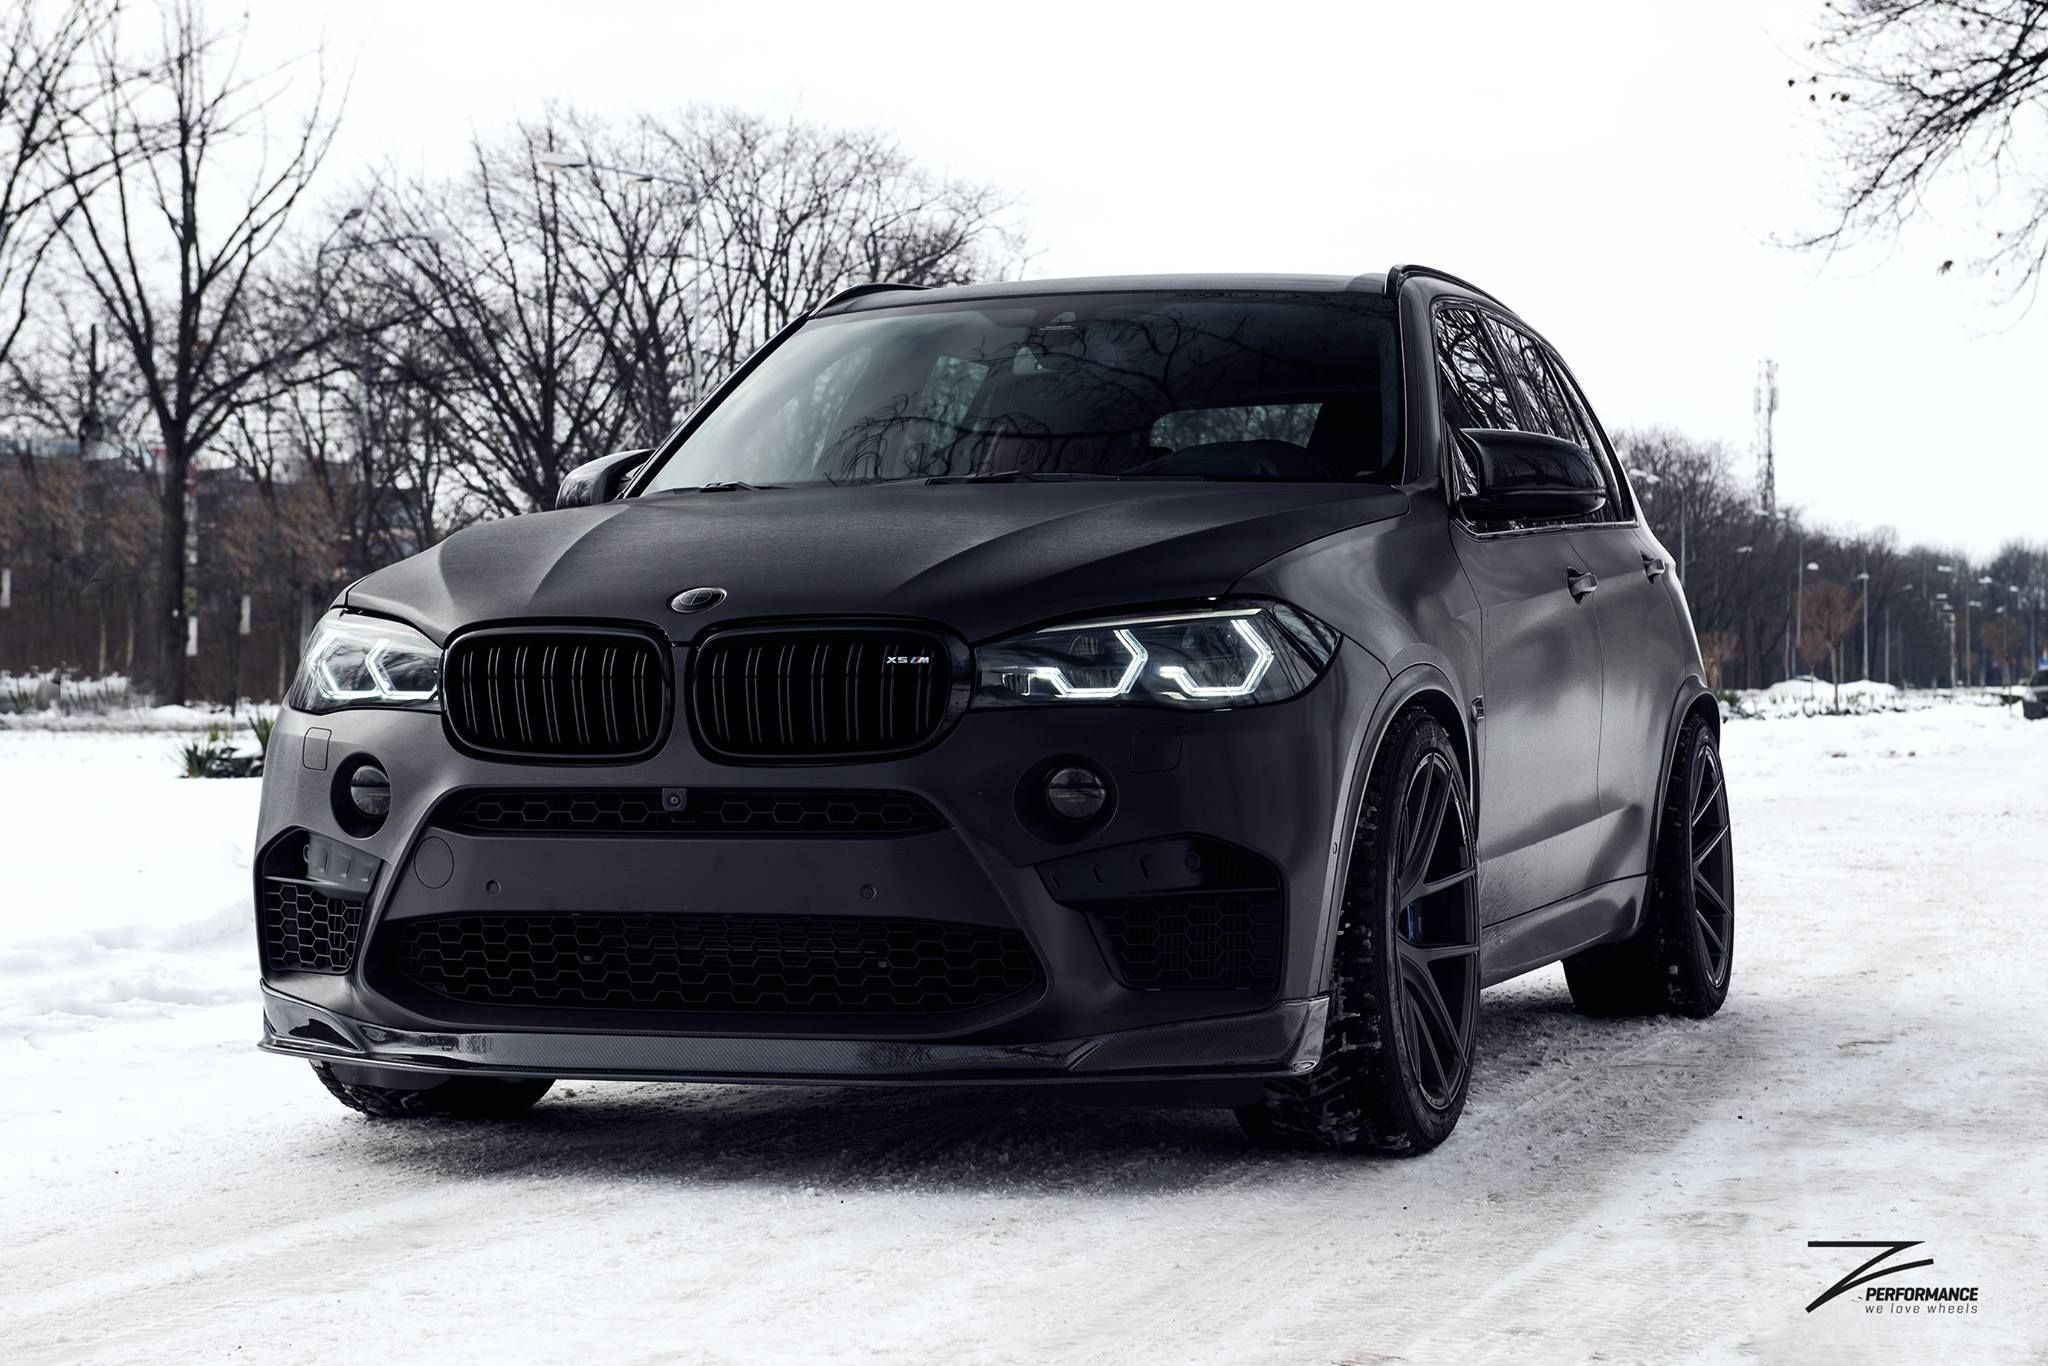 Bmw X5 With Images Bmw Cars Bmw Bmw X5 M